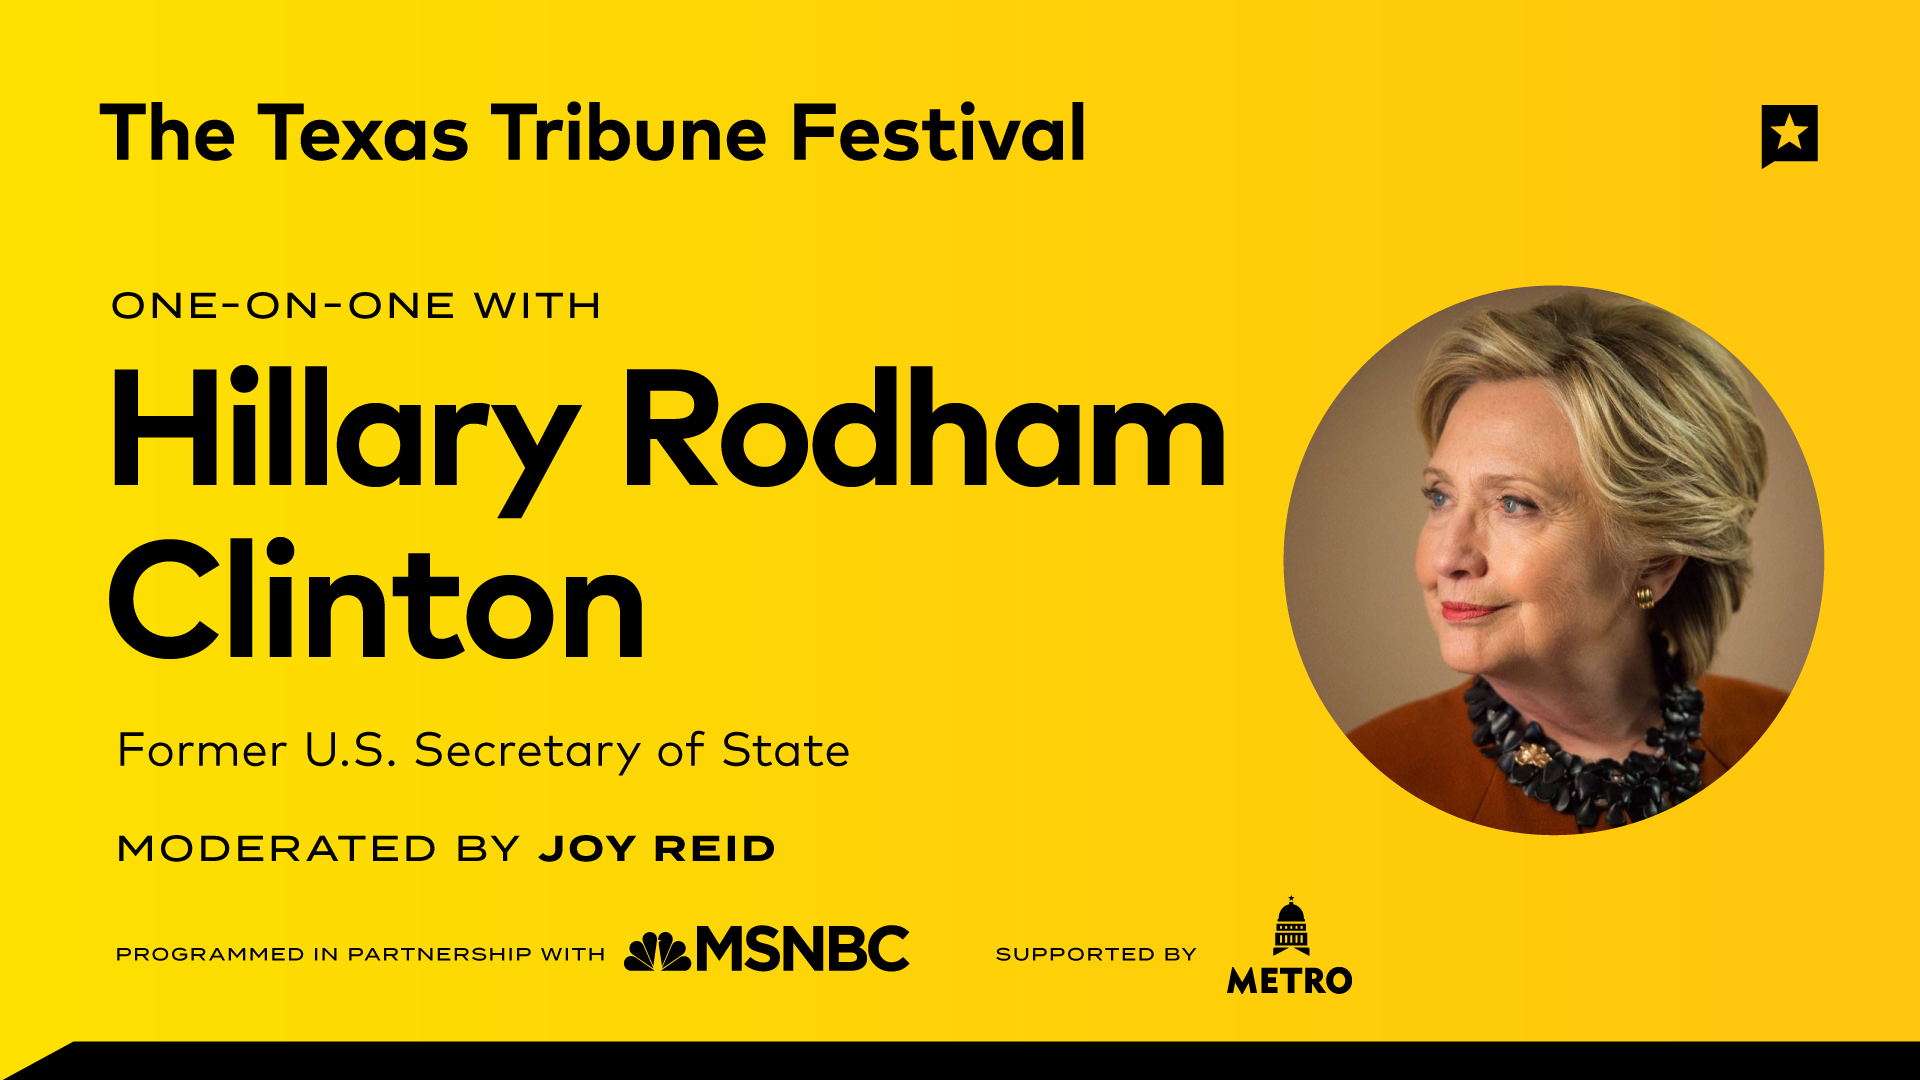 One-on-One with Hillary Rodham Clinton